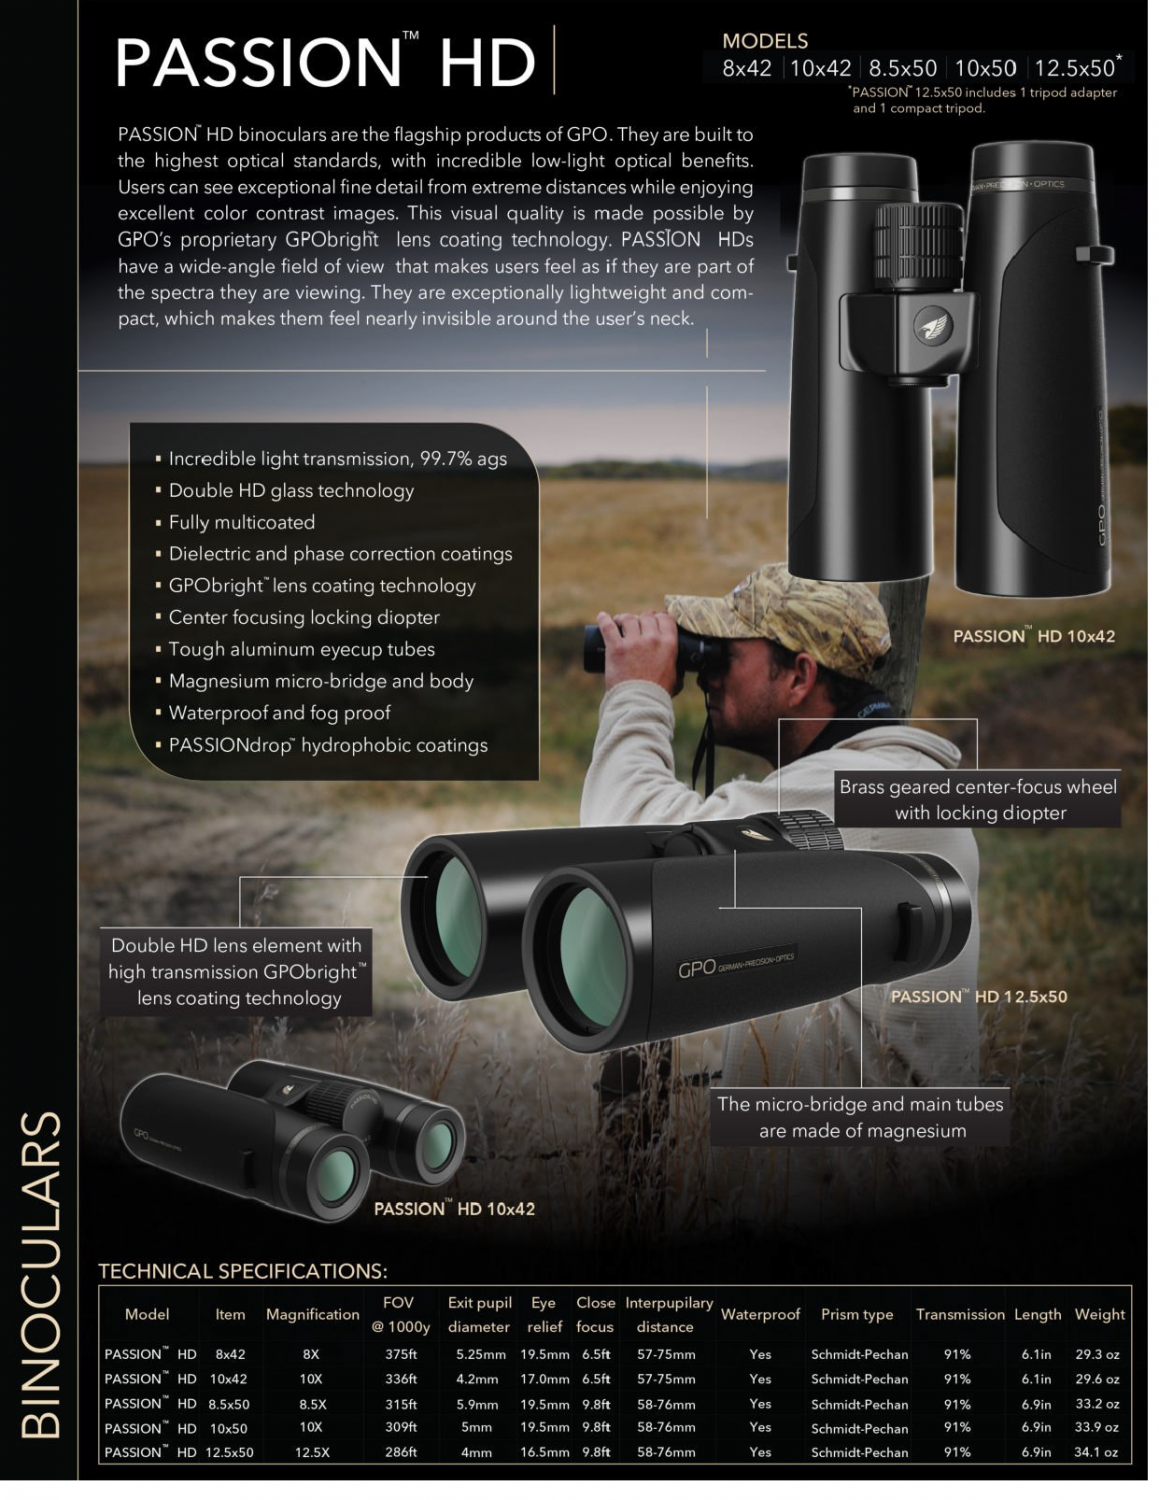 GPO's flagship product is the Passion HD binocular.